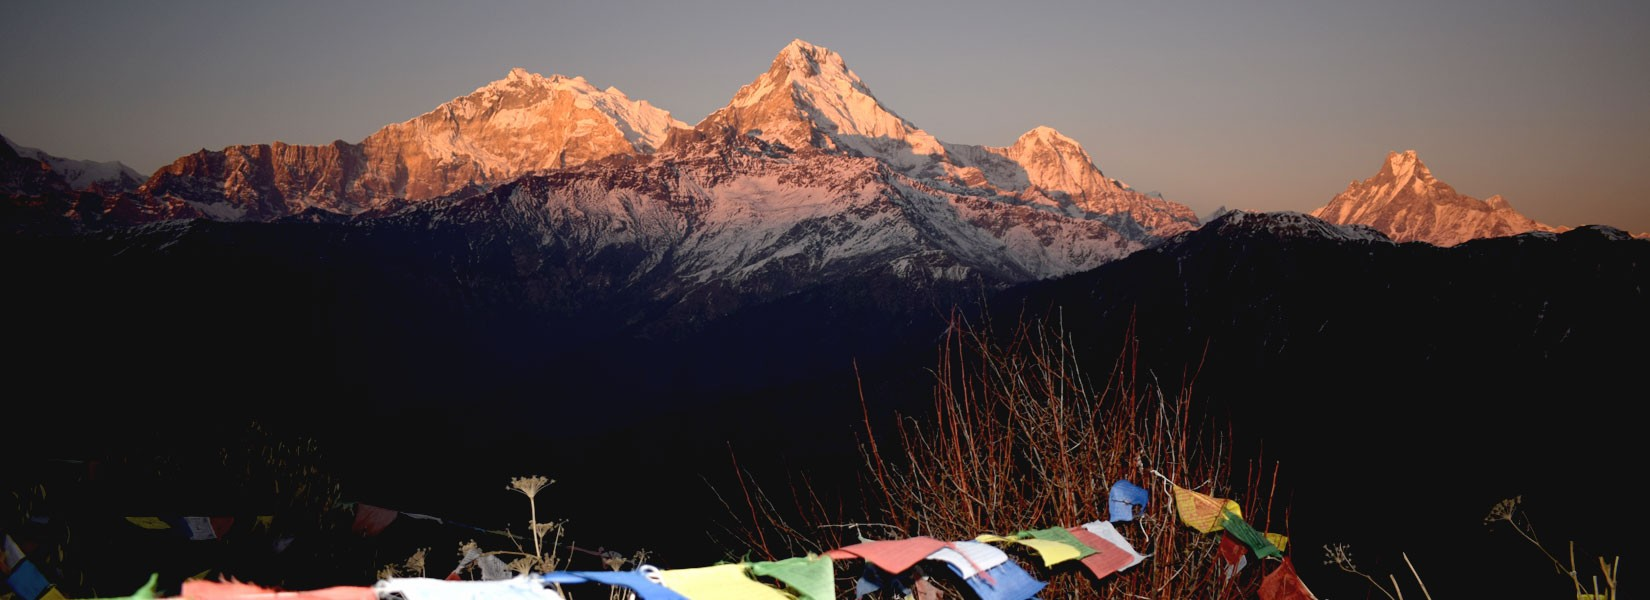 Sunset view over Annapurna Range